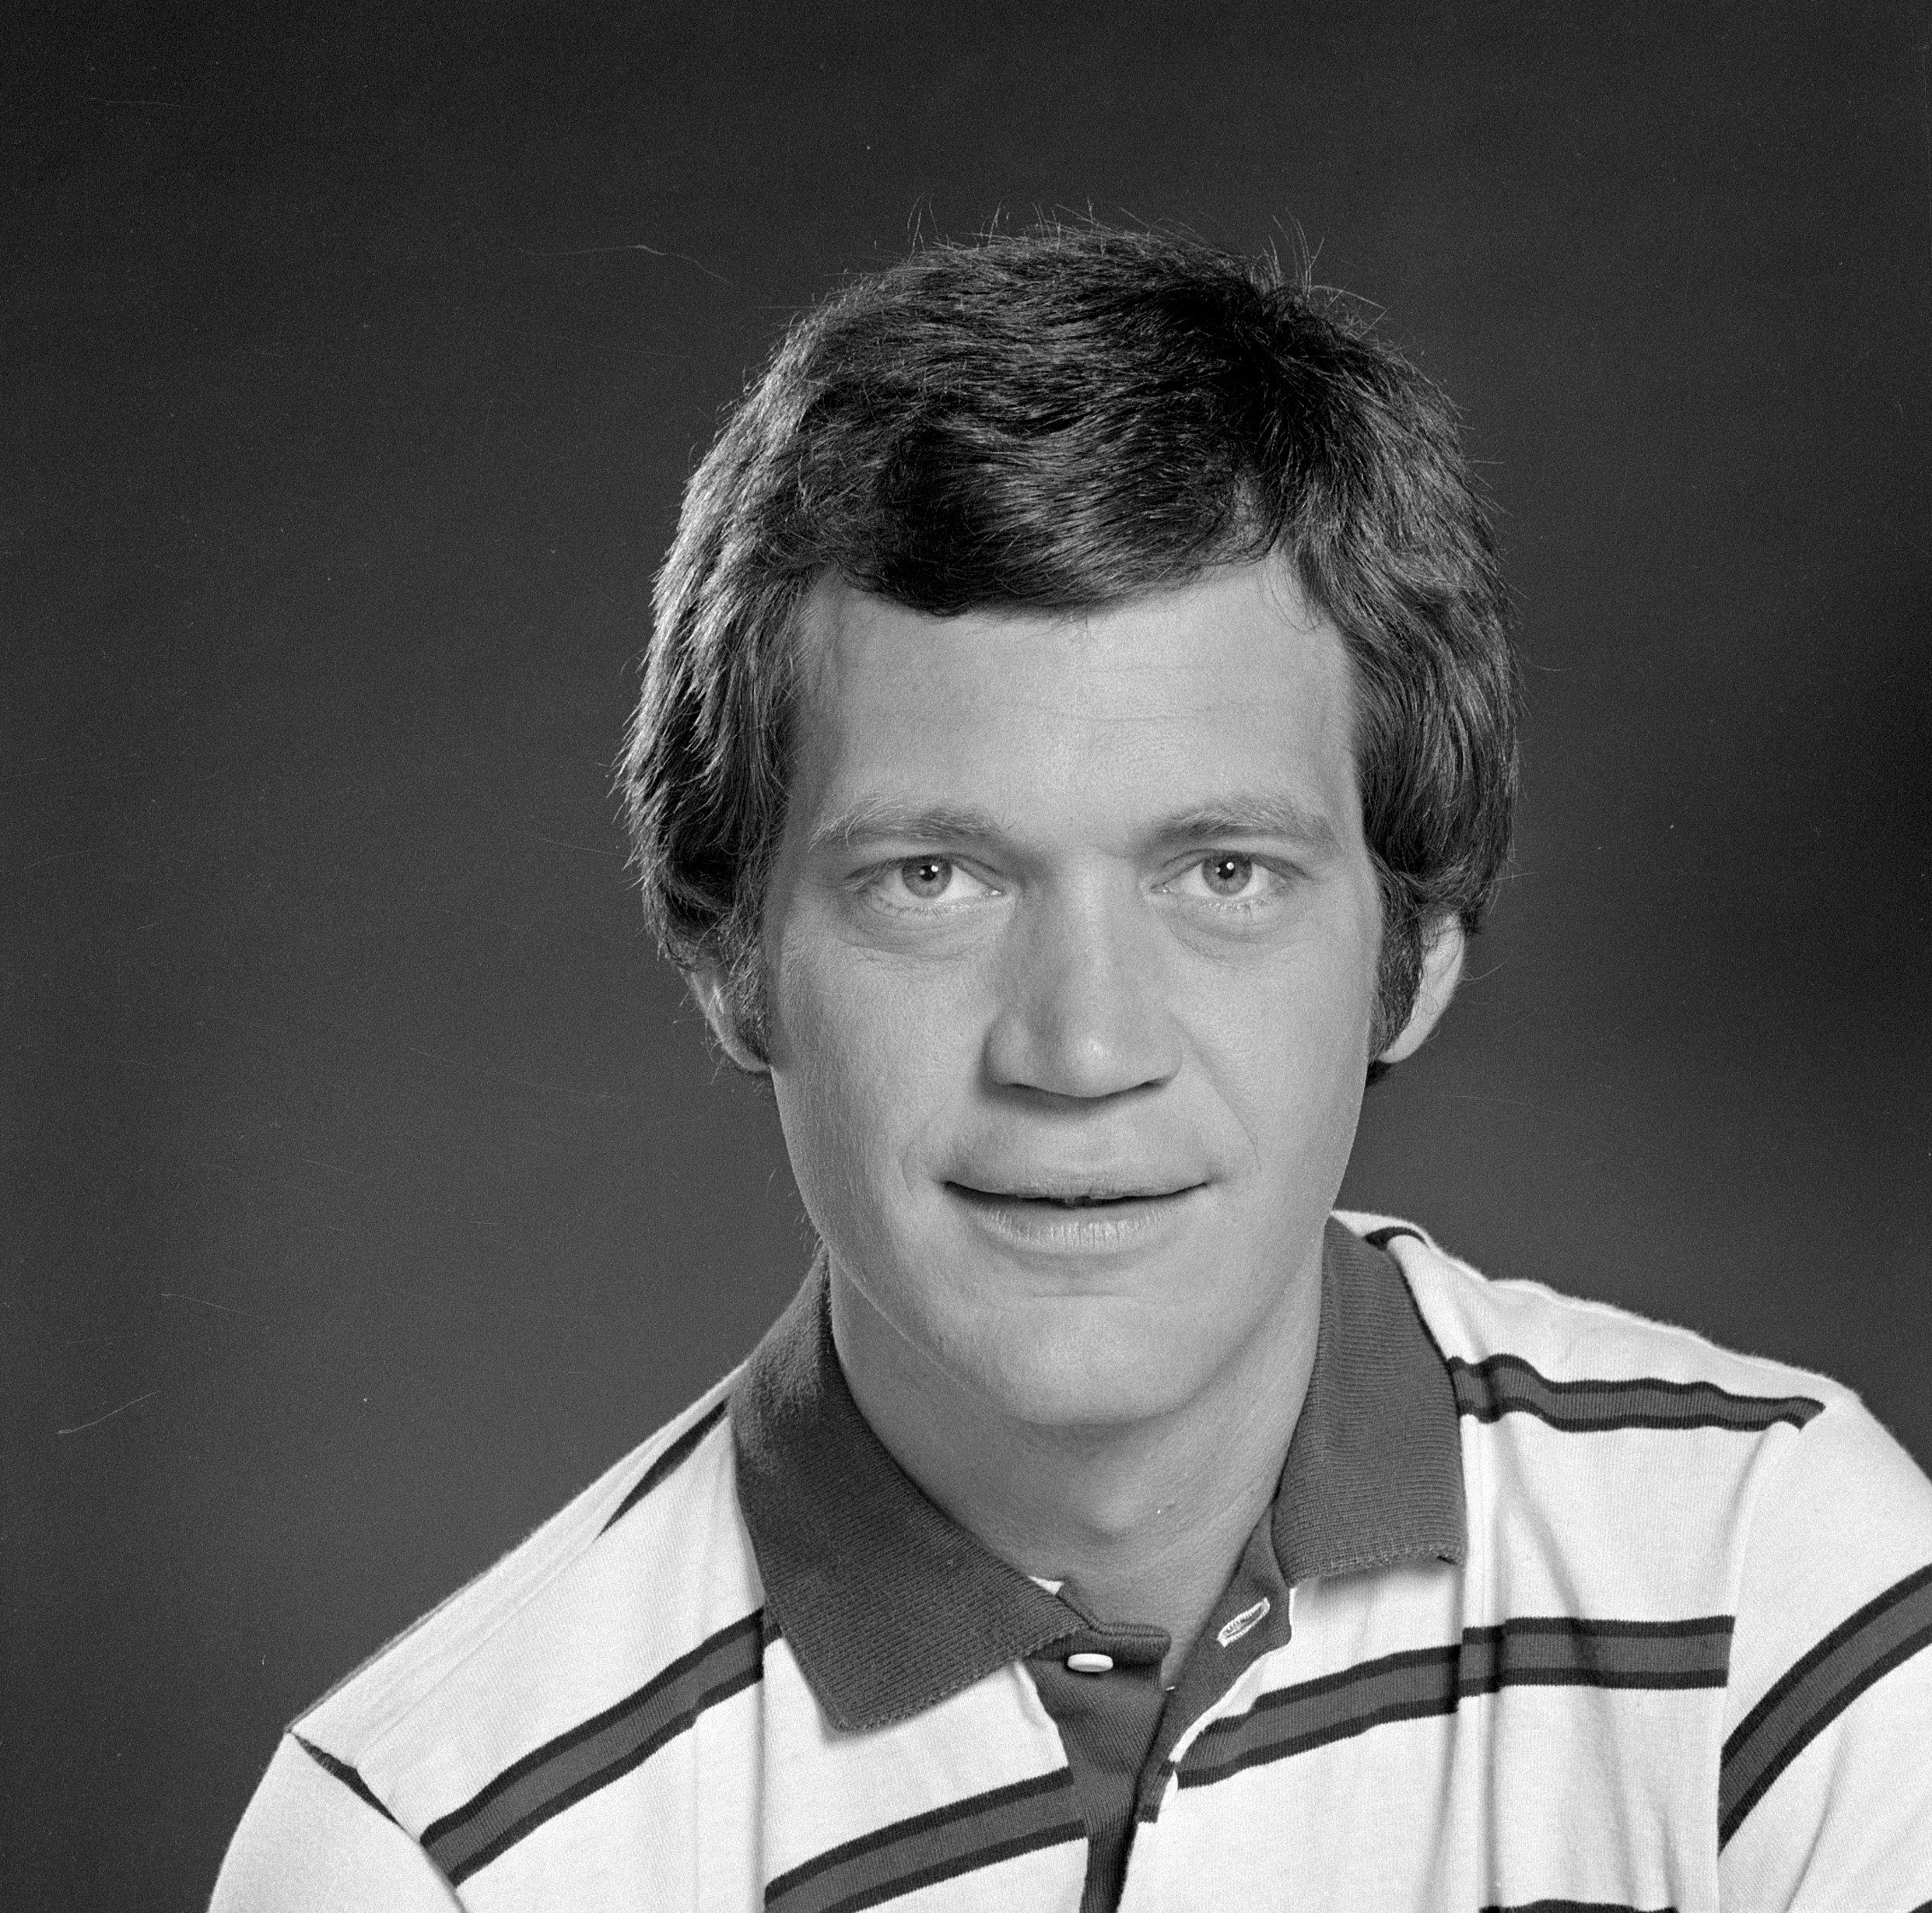 Publicity photo of David where he is wearing a striped polo